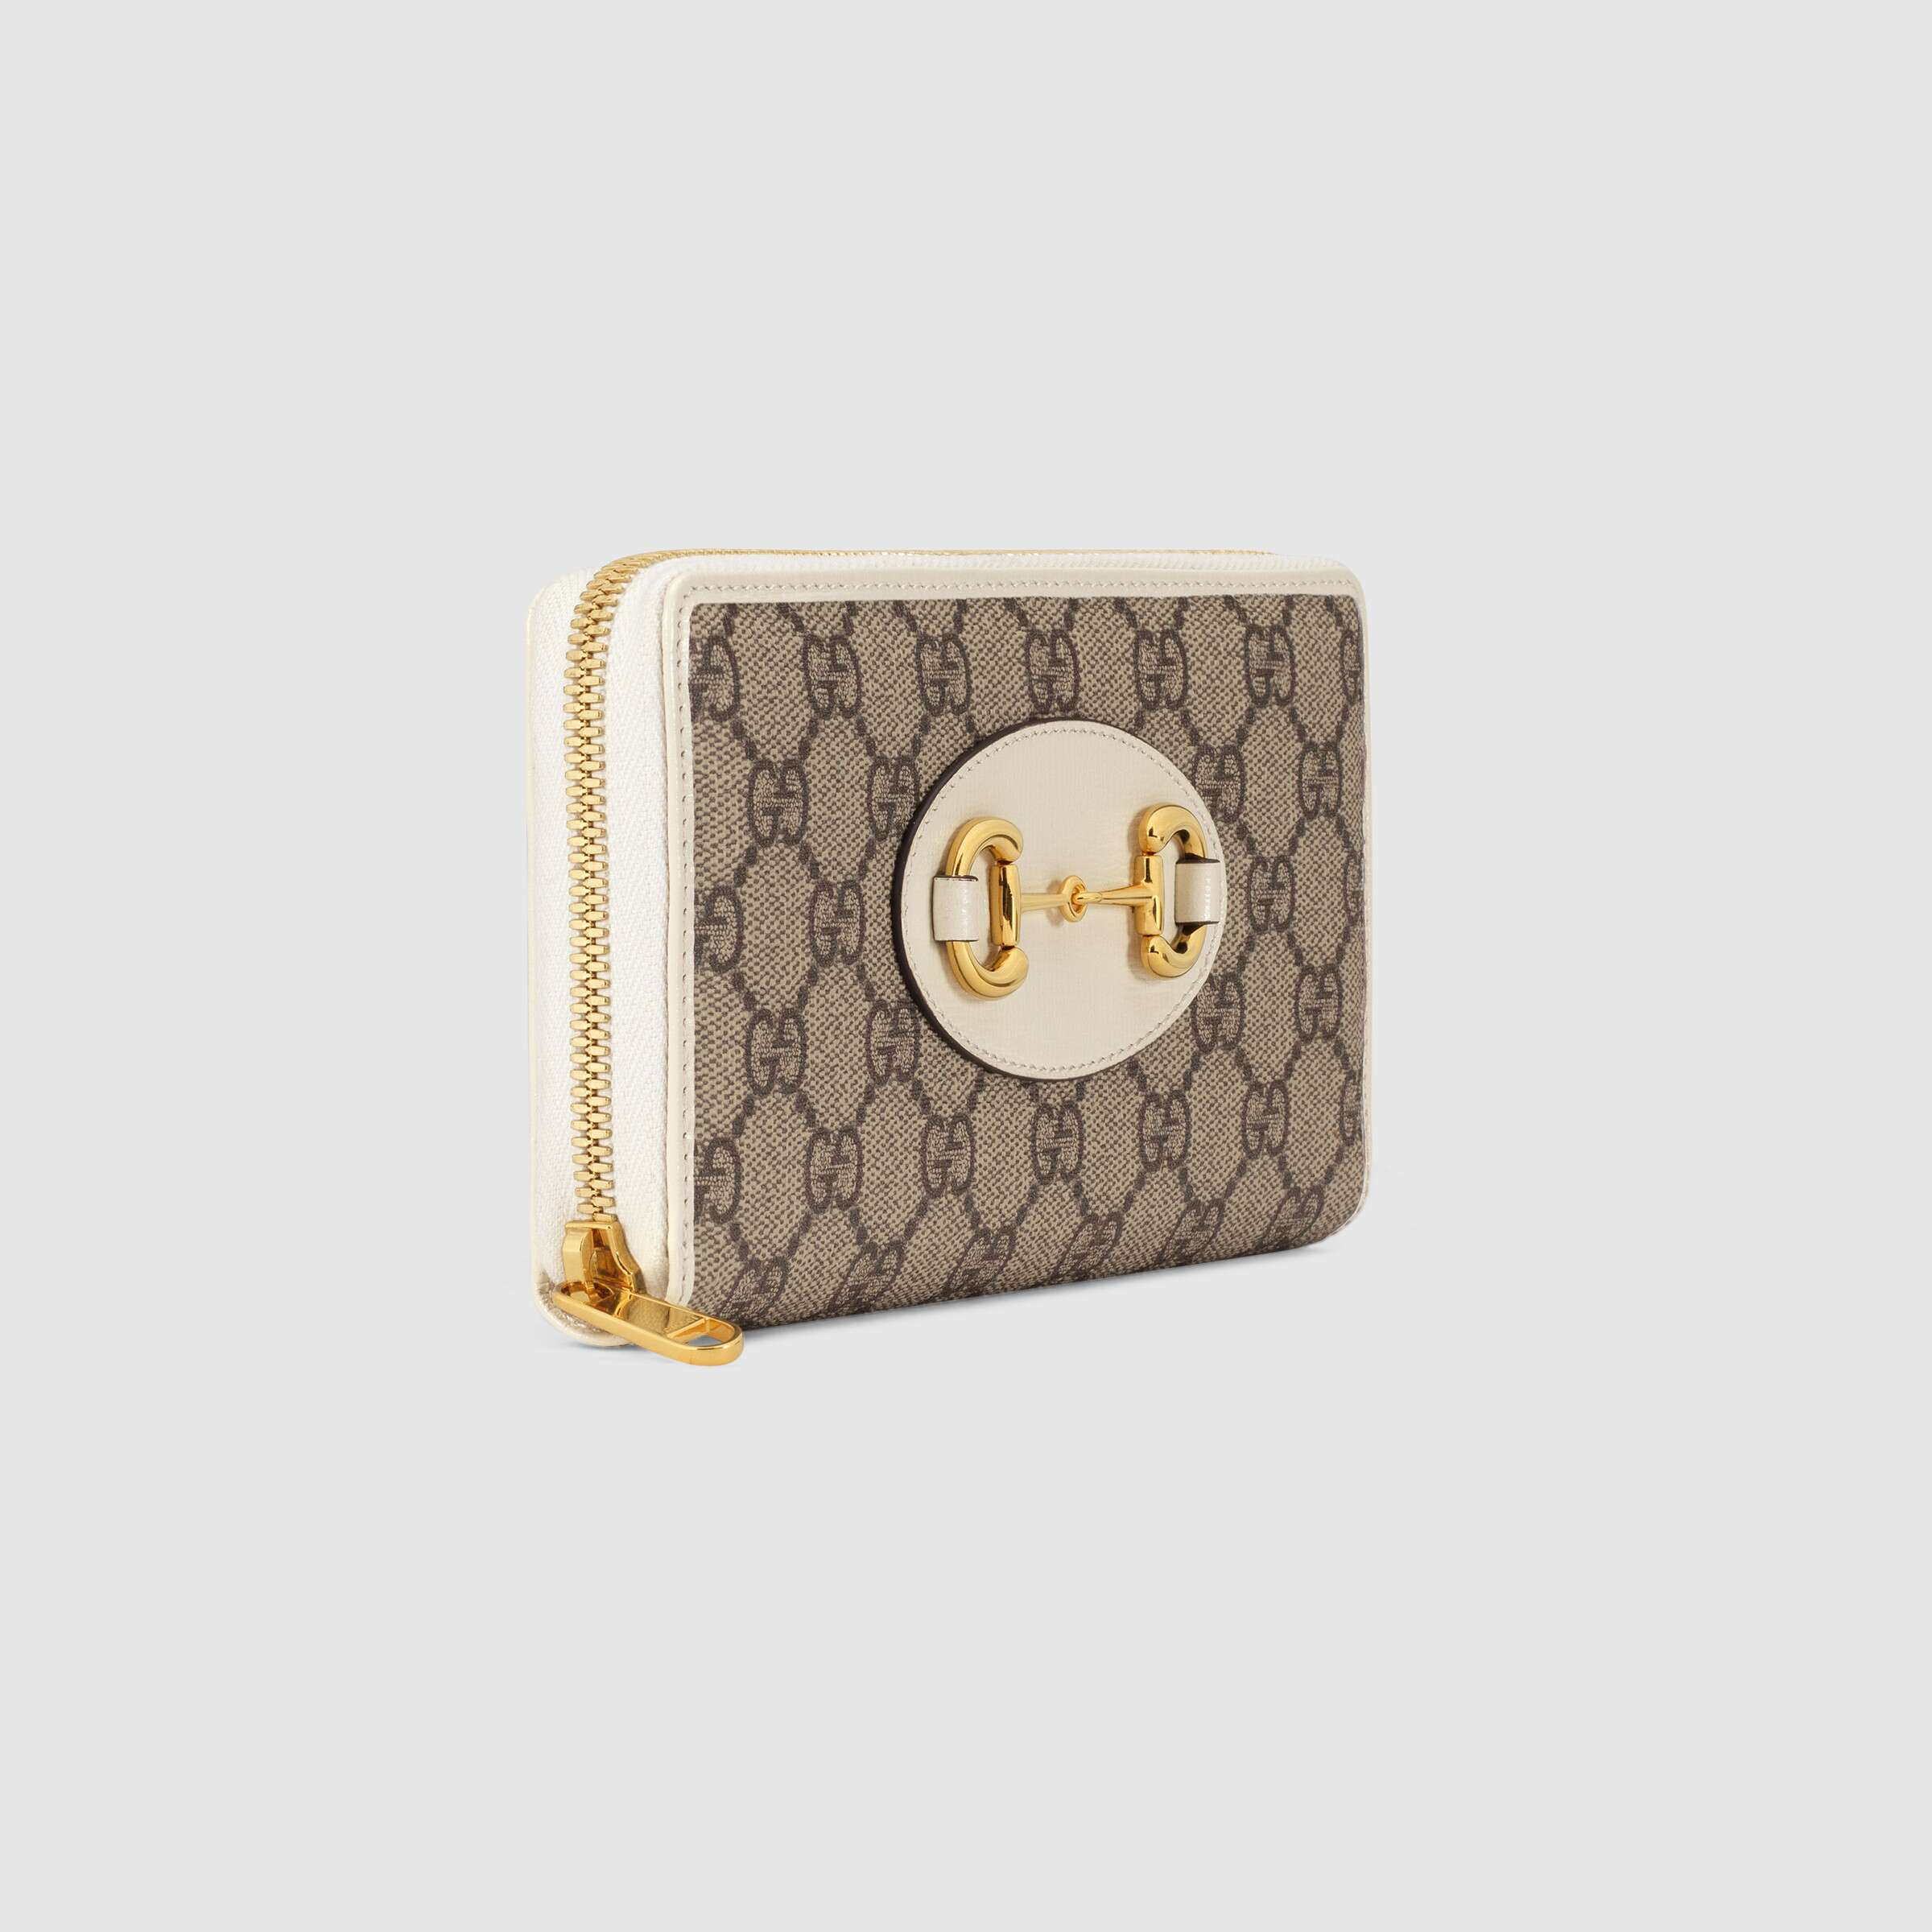 유럽직배송 구찌 GUCCI 1955 Horsebit zip around wallet 62188992TCG9761